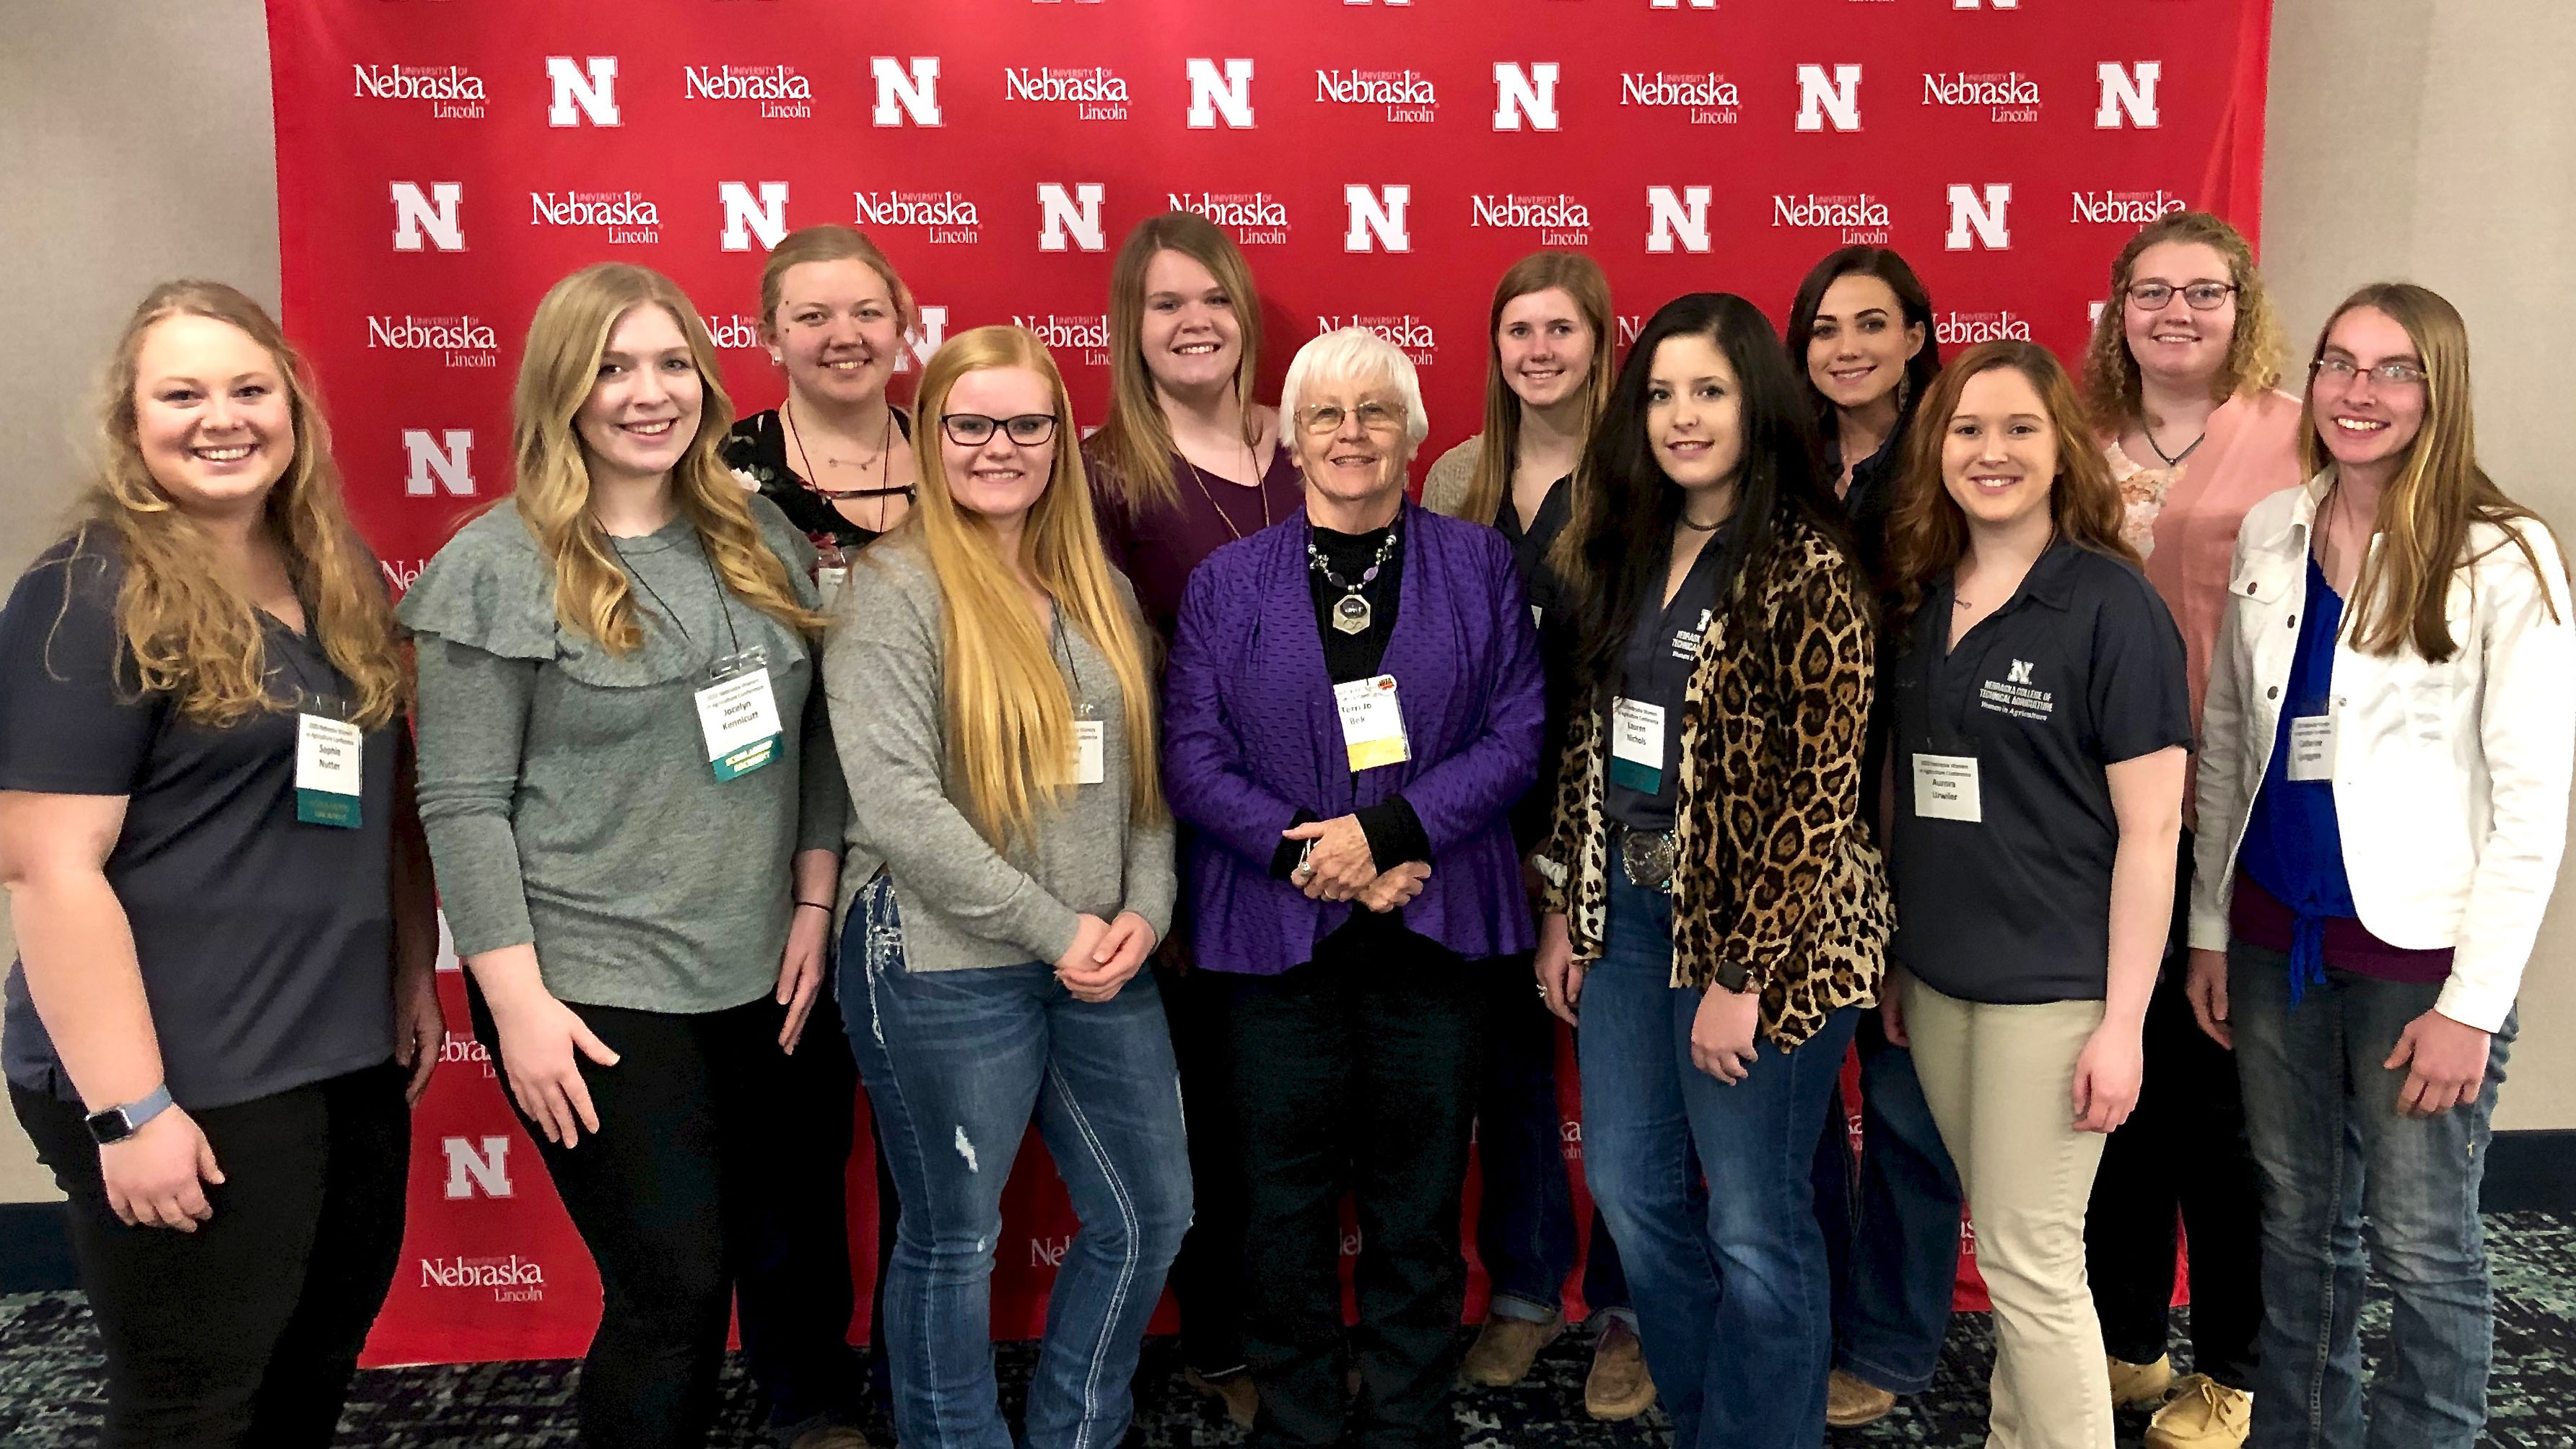 Women in Ag from the Nebraska College of Technical Agriculture will host a Meet & Greet and panel discussion on Tuesday. Jo Bek, center, is one of the panelists. Sophie Nutter, far left, is the club president and invites any women from the area to attend. (NCTA file photo)